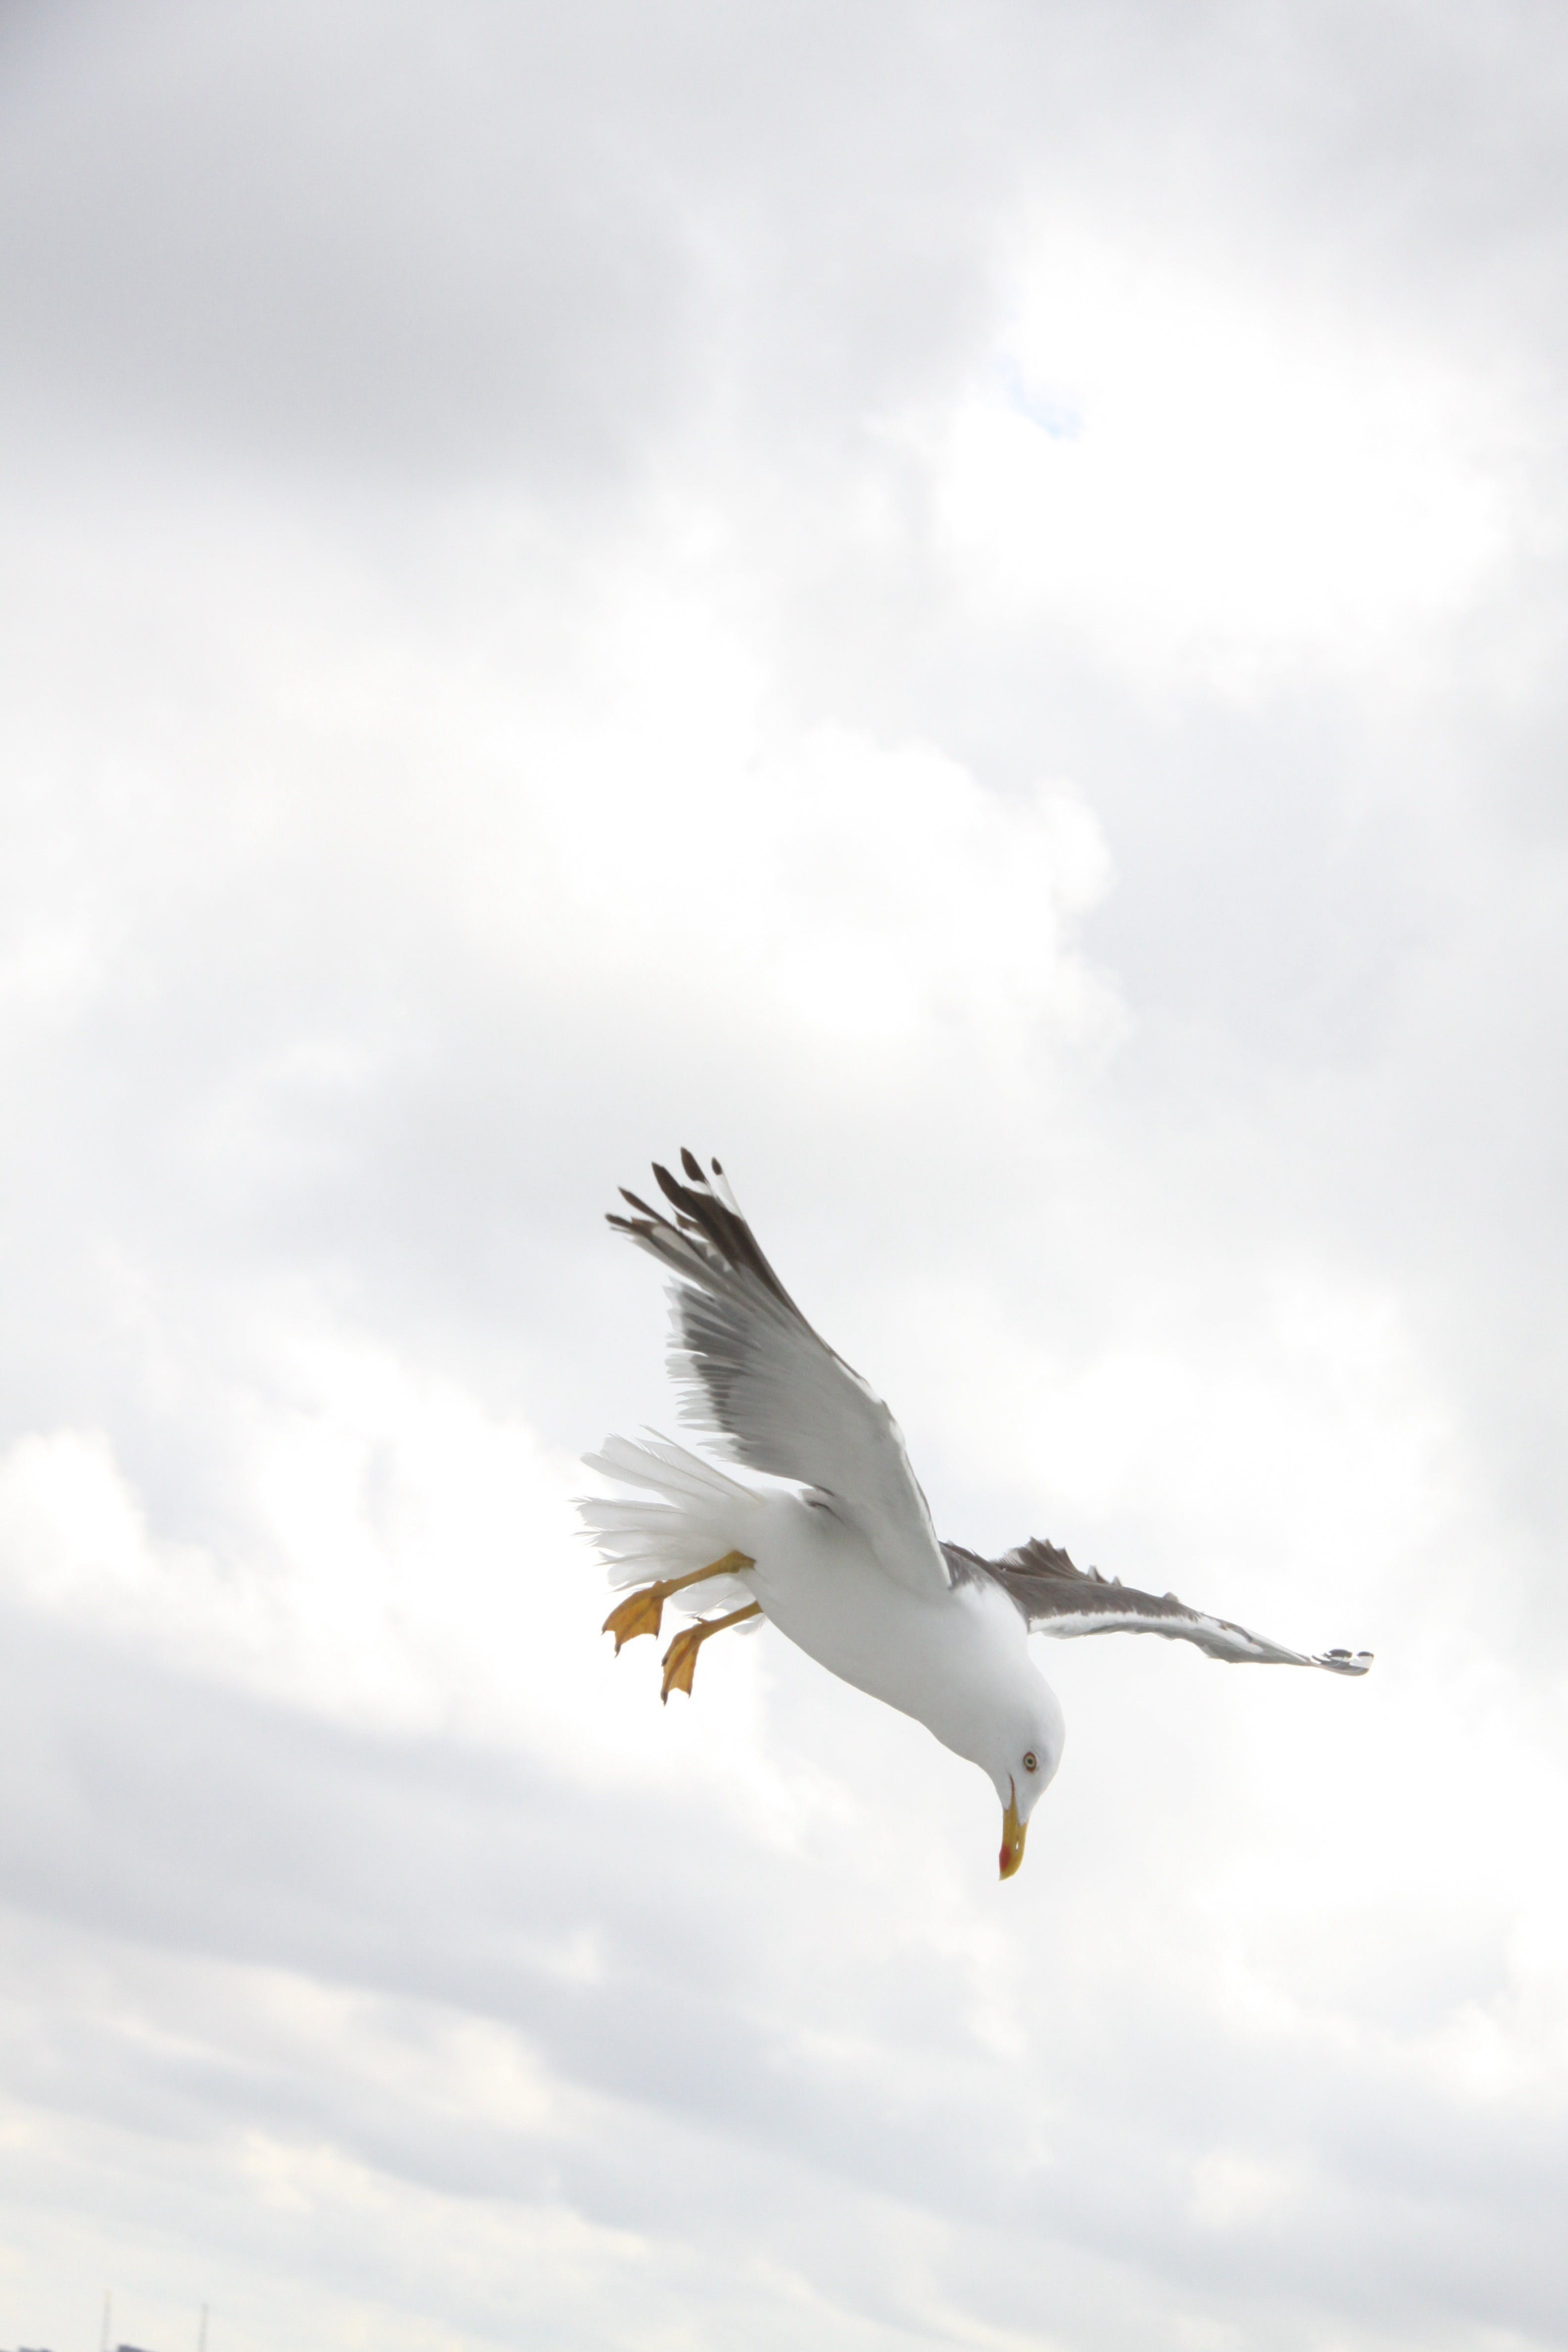 Sea Gull on Flight during Daytime